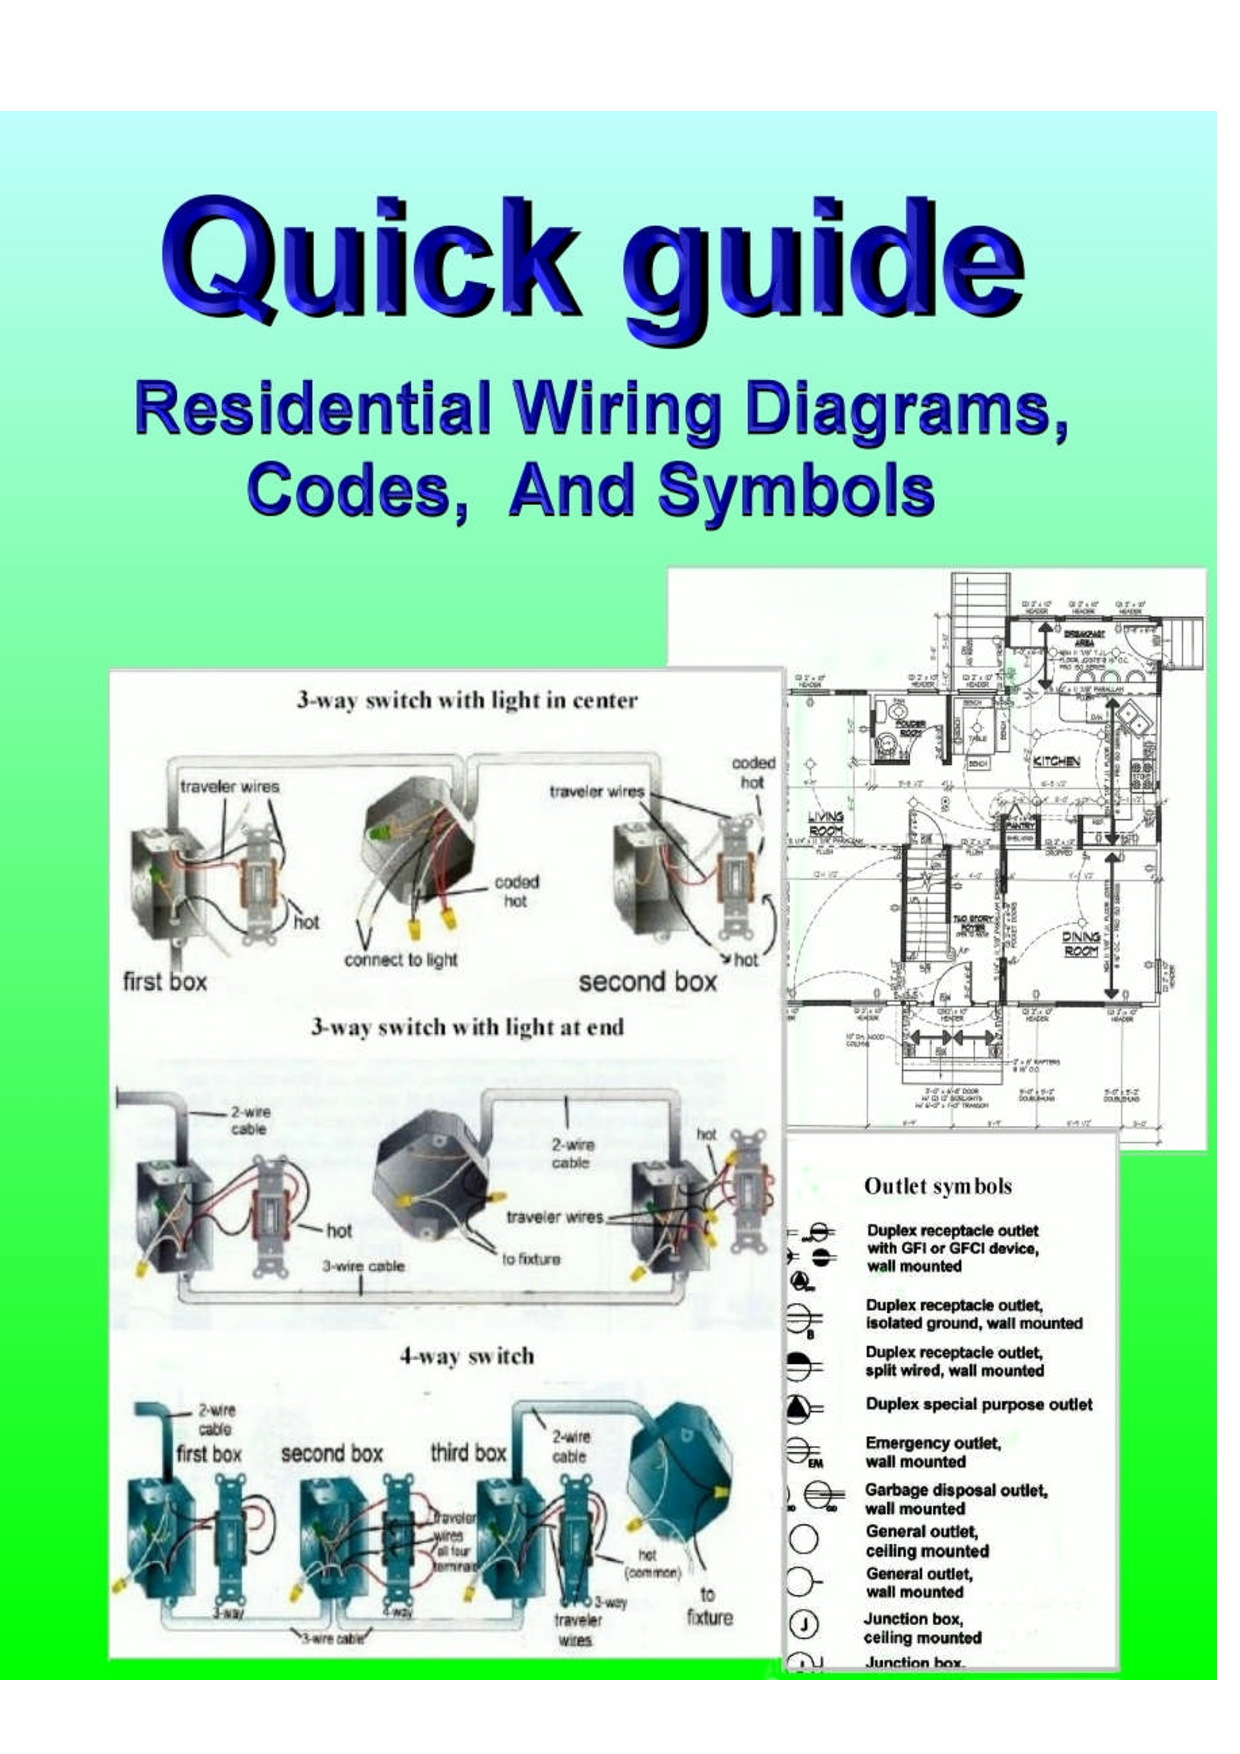 home electrical wiring diagrams pdf download legal documents 39 rh pinterest com complete guide home wiring pdf advanced home wiring pdf